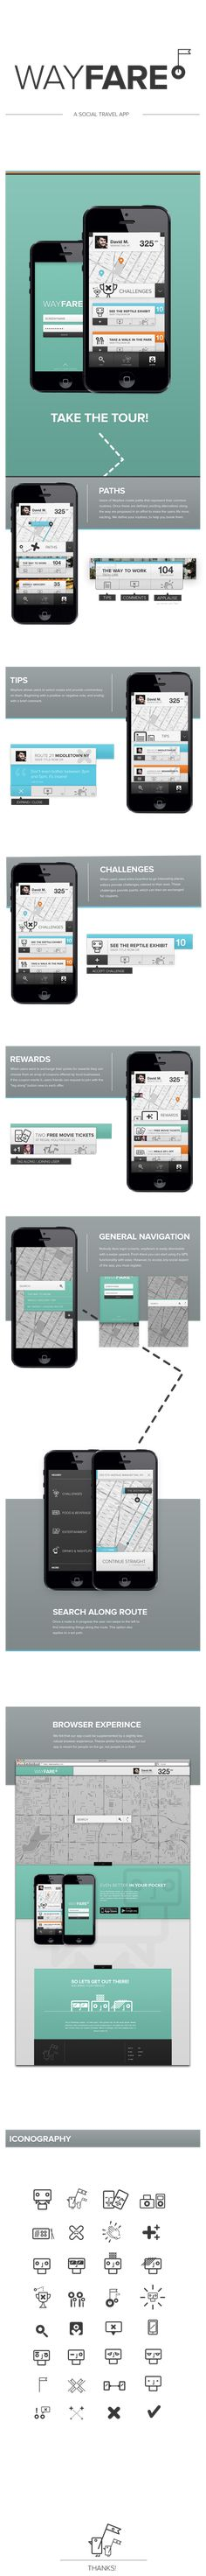 Wayfare by Matthew Mitchell, via Behance